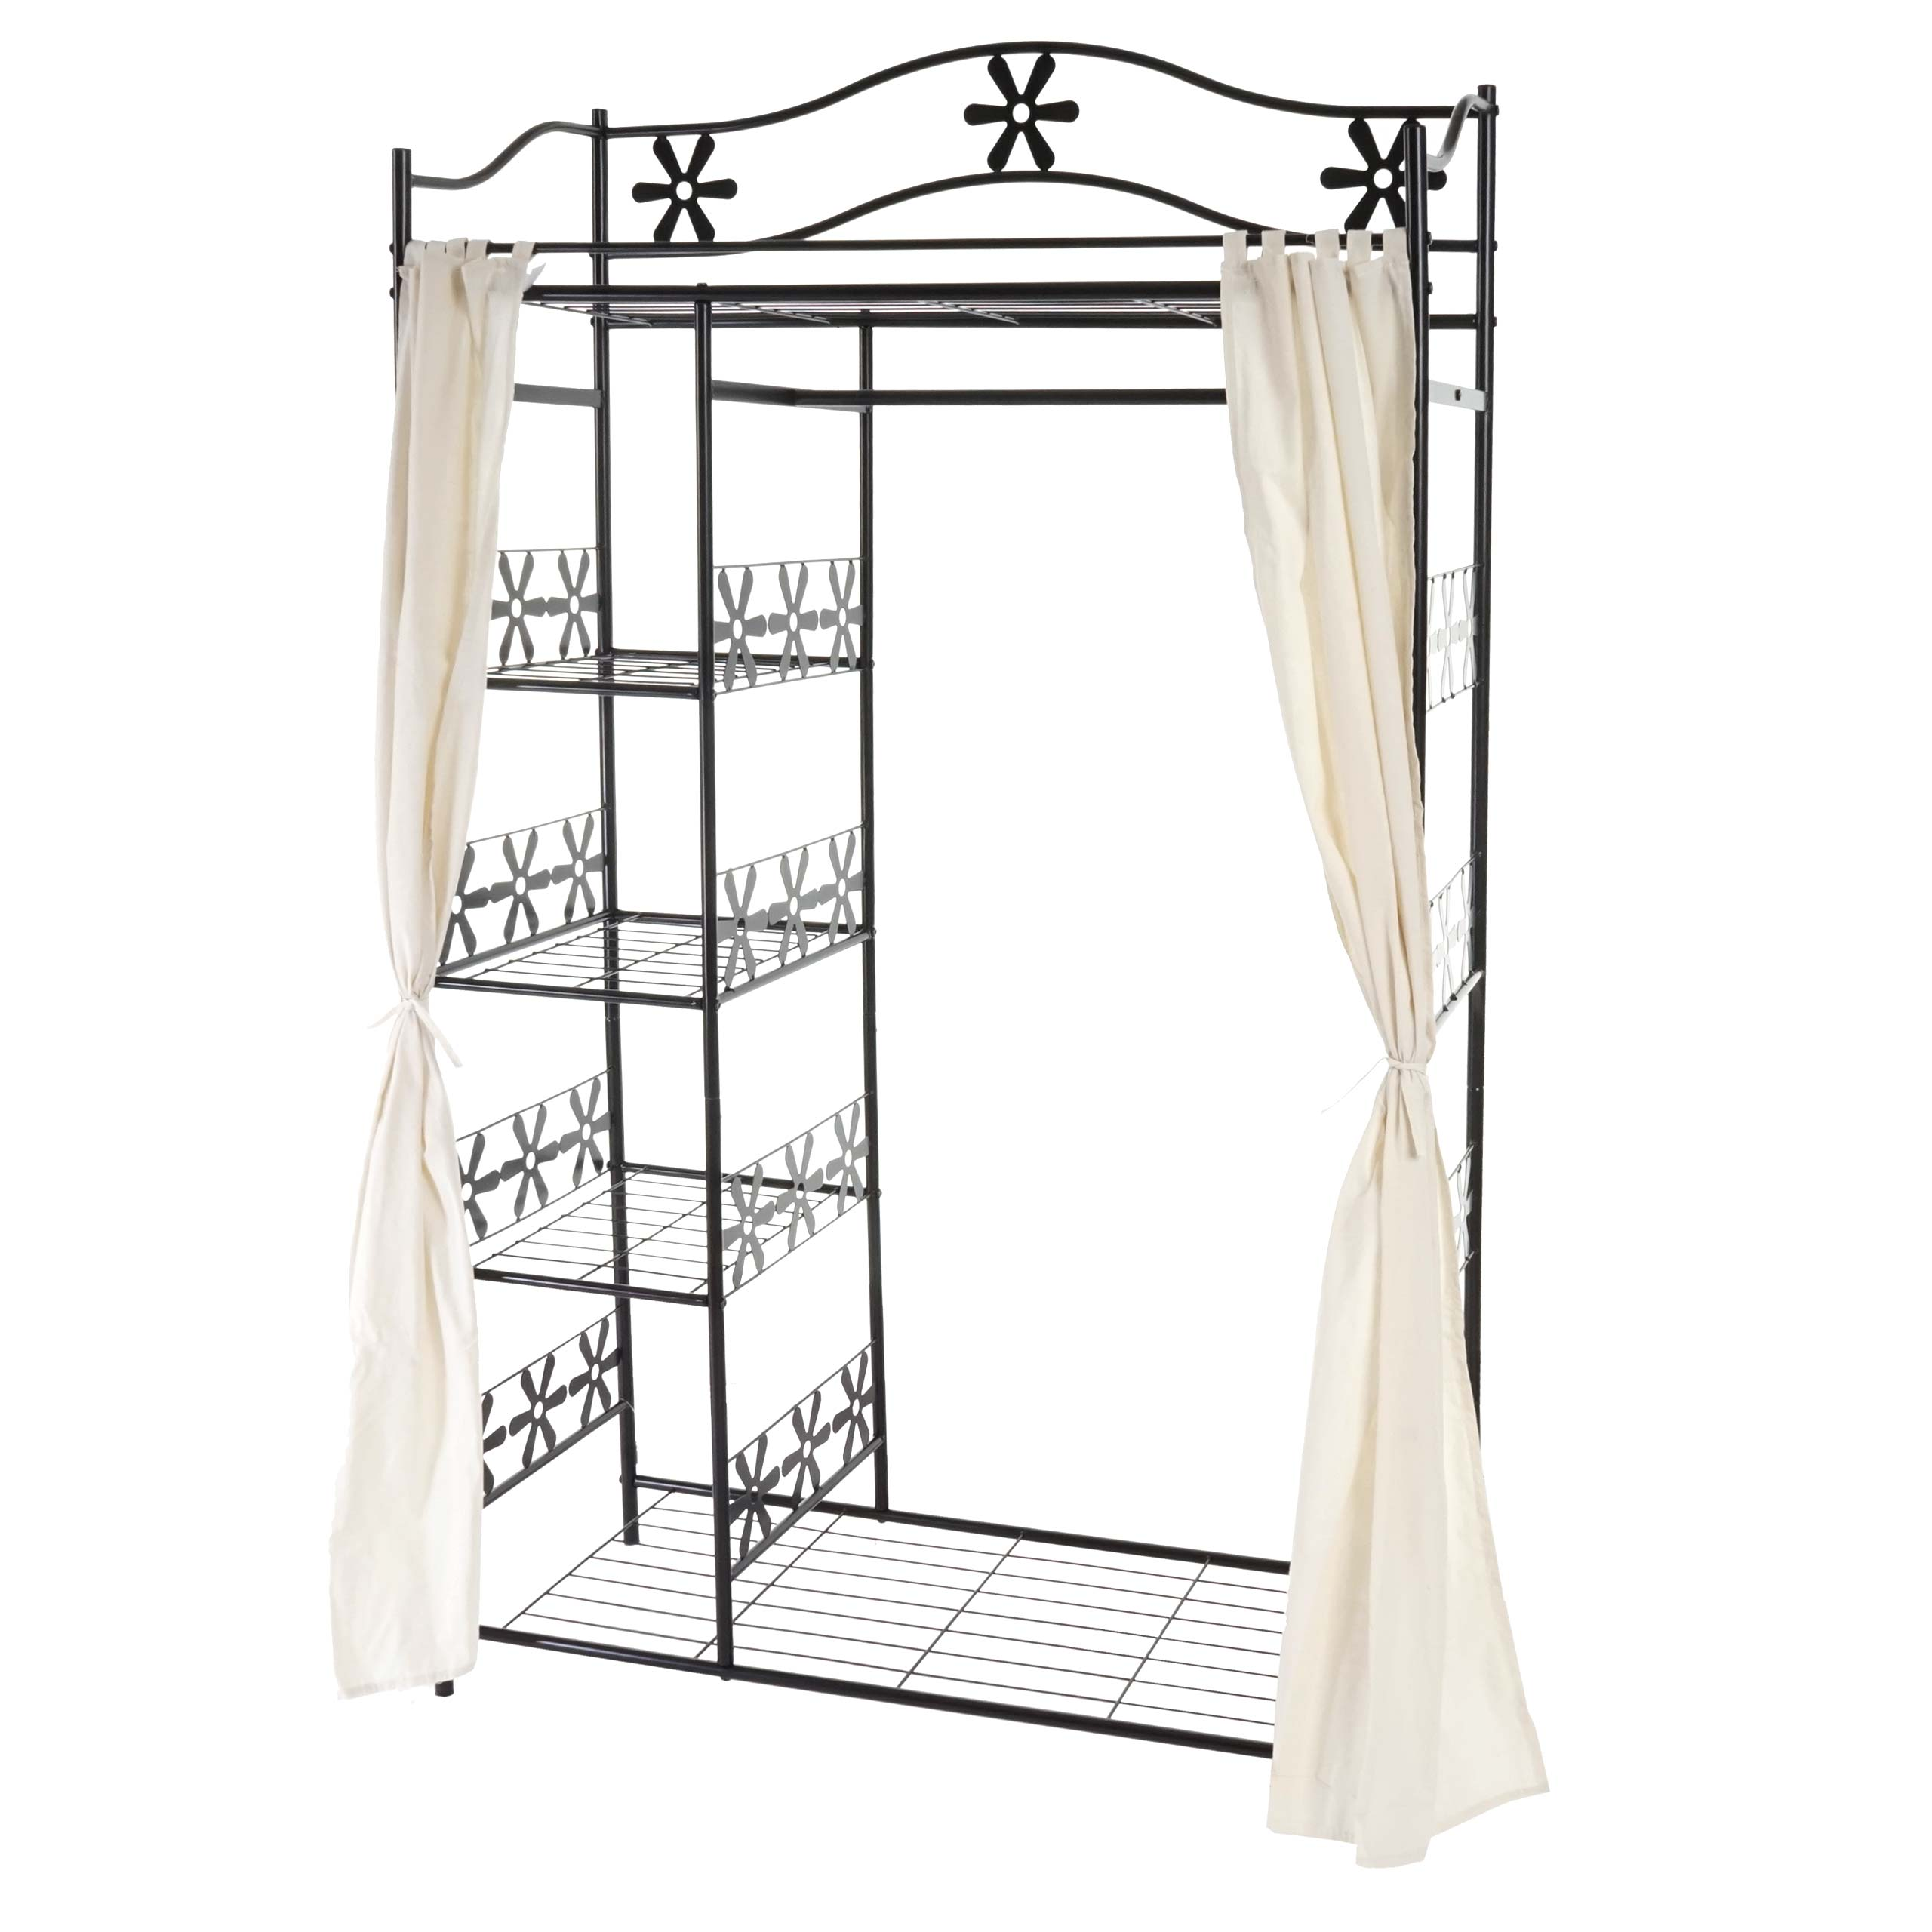 metall garderobe genf garderobenst nder kleiderschrank metallregal 172x100x43cm mit vorhang. Black Bedroom Furniture Sets. Home Design Ideas